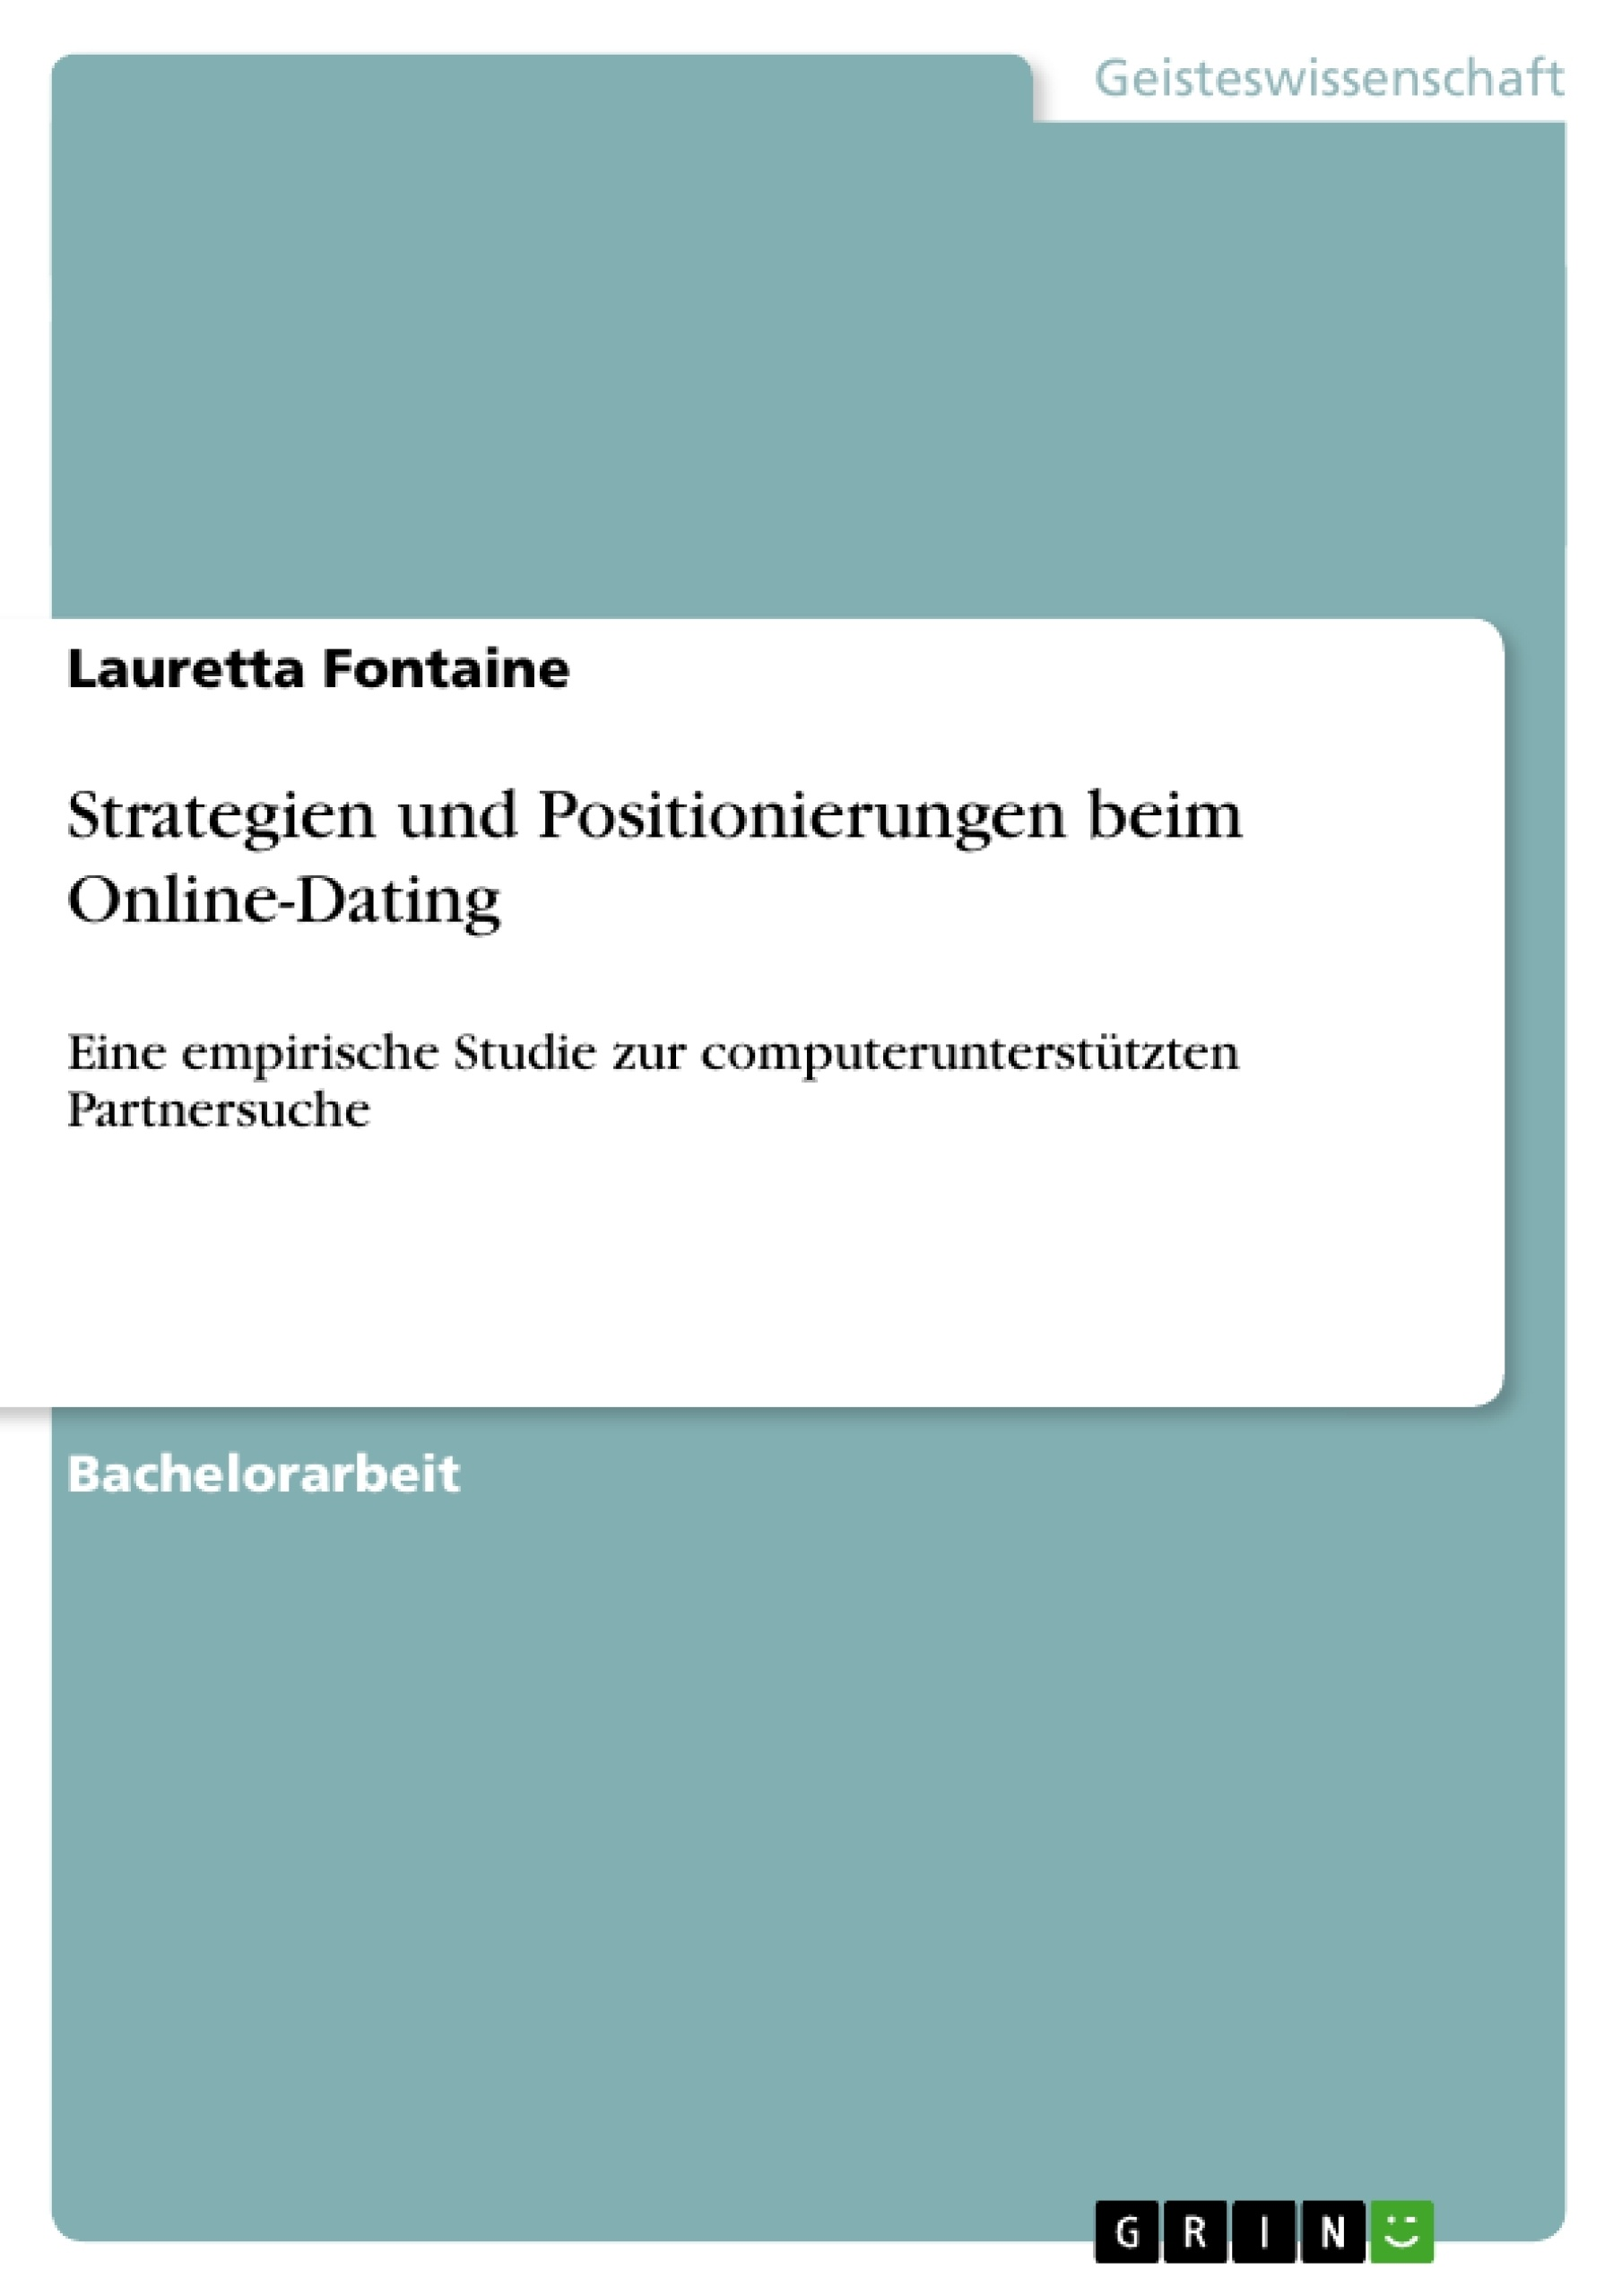 Traditionelle vs Online-Dating